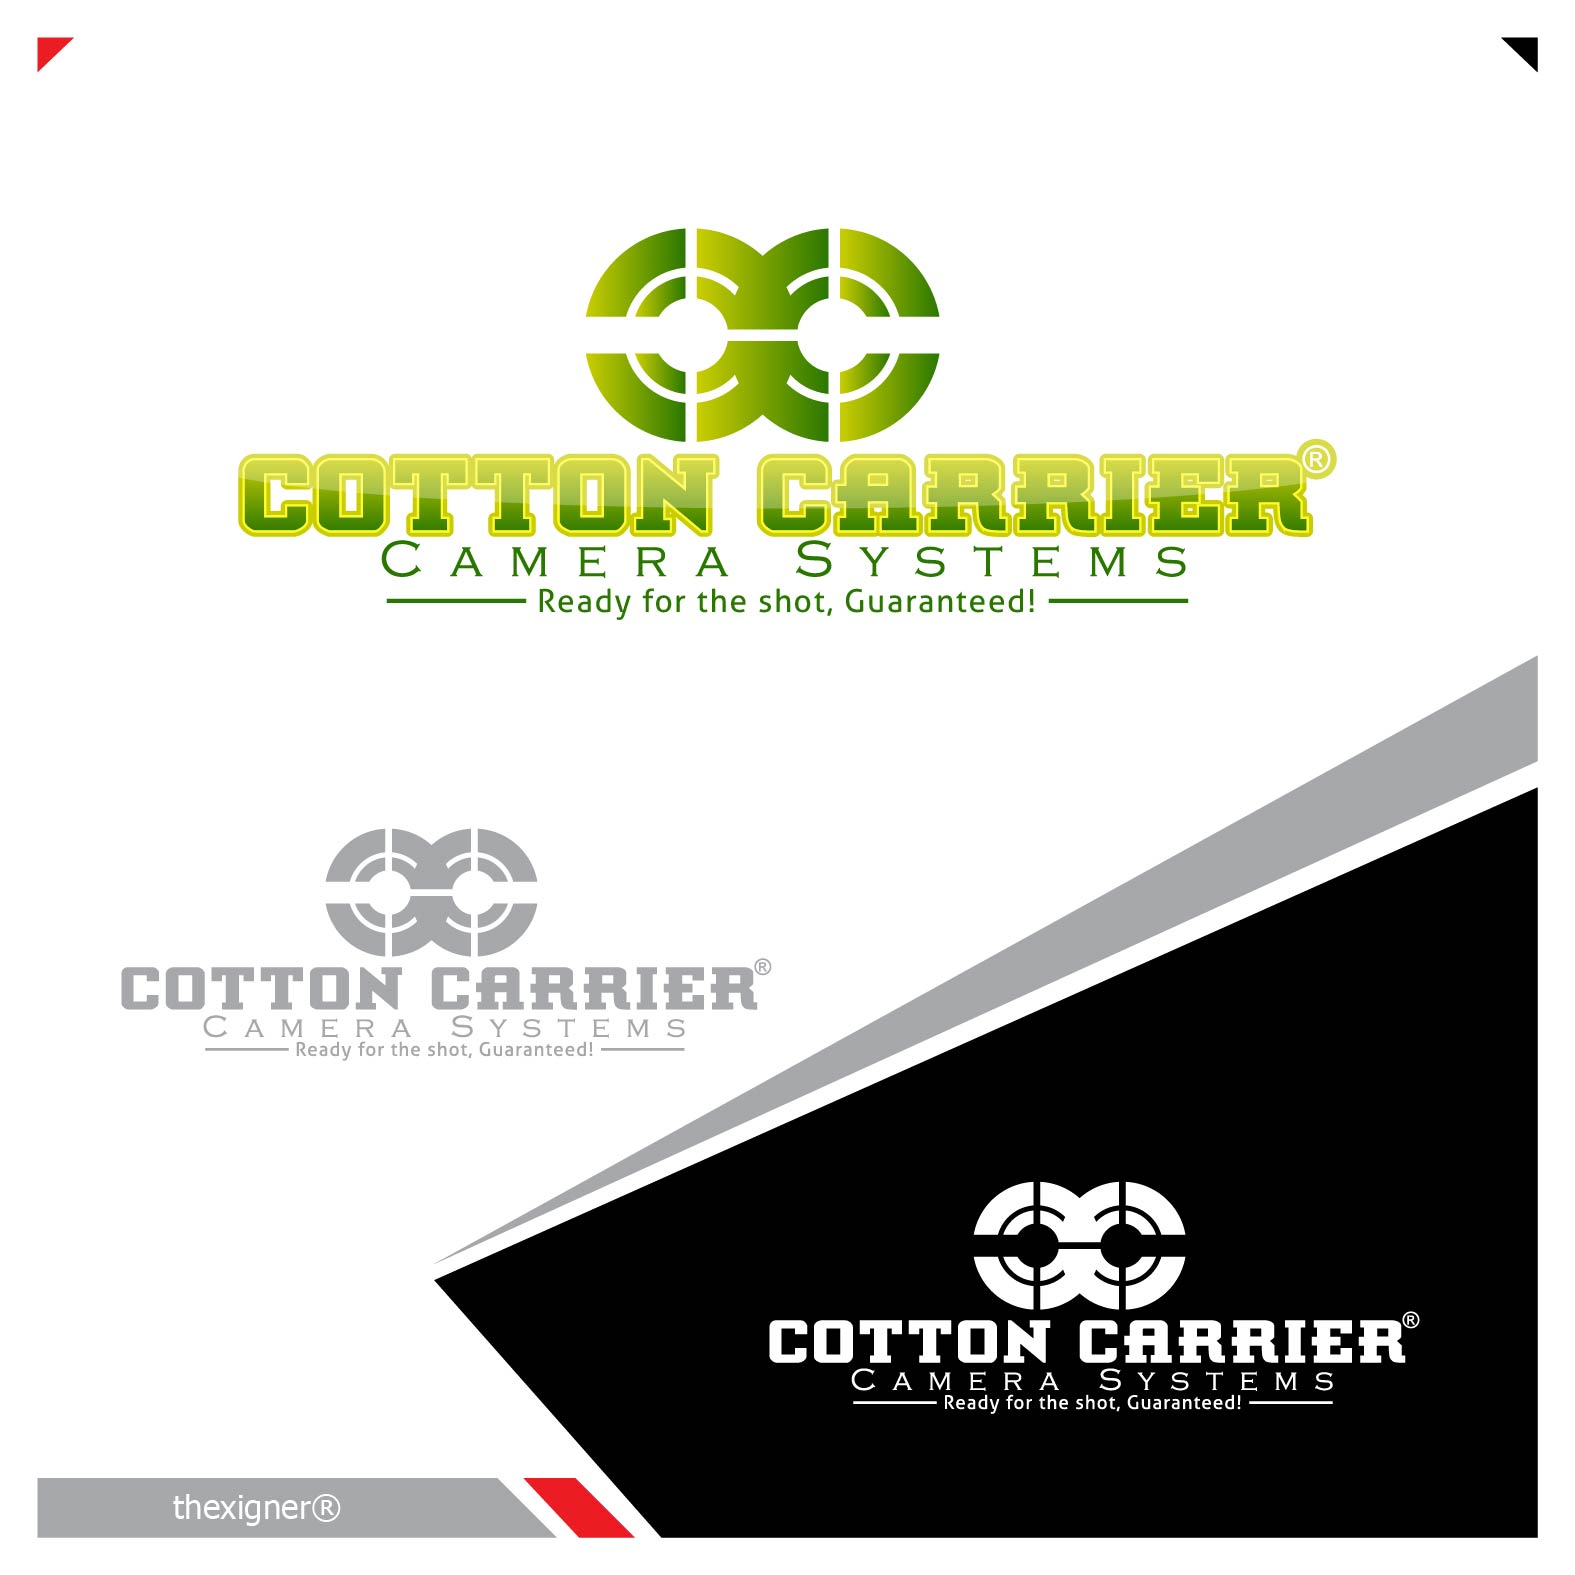 Logo Design by lagalag - Entry No. 23 in the Logo Design Contest Cotton Carrier Camera Systems Logo Design.